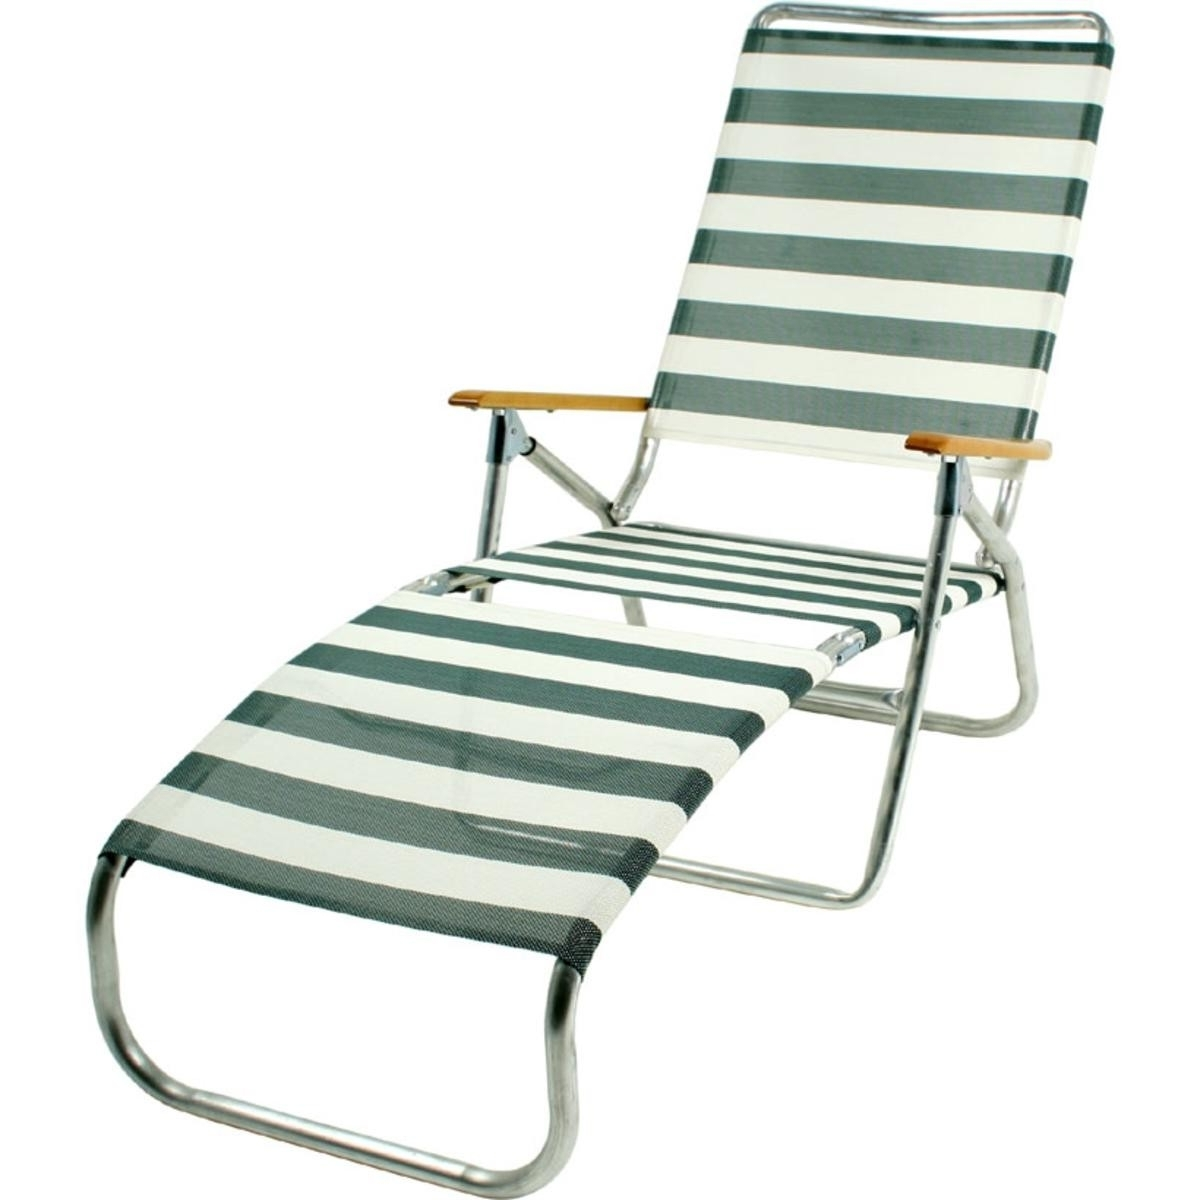 Folding Chaise Lounge Chairs Intended For Well Known Folding Beach Chaise Lounge Chairs Ideas With Idea  (View 3 of 15)